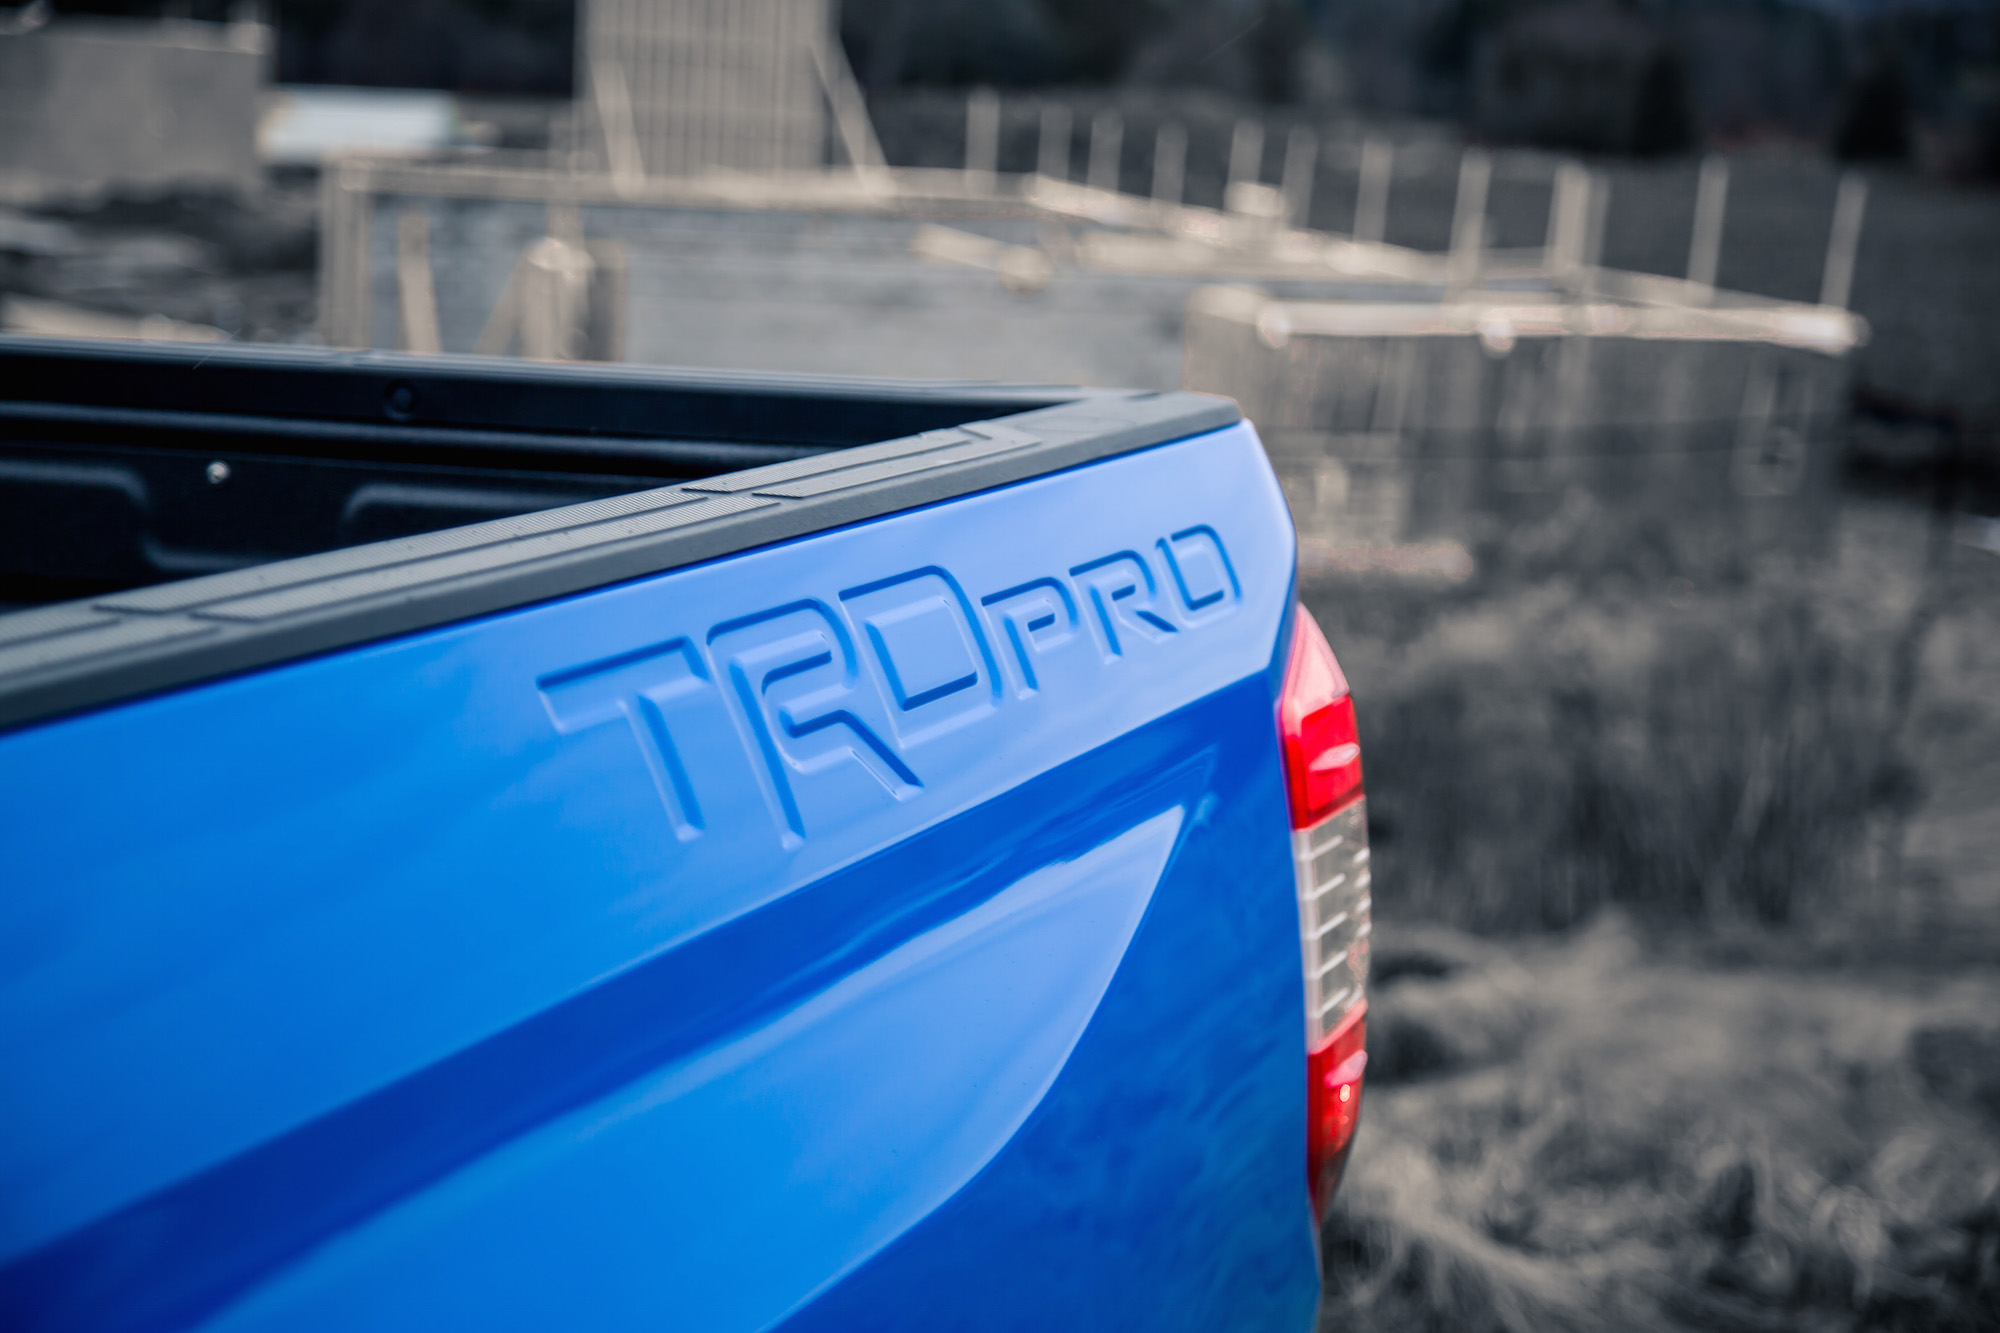 Tundra Trd Pro >> Review: 2019 Toyota Tundra TRD Pro CrewMax SR5 | CAR